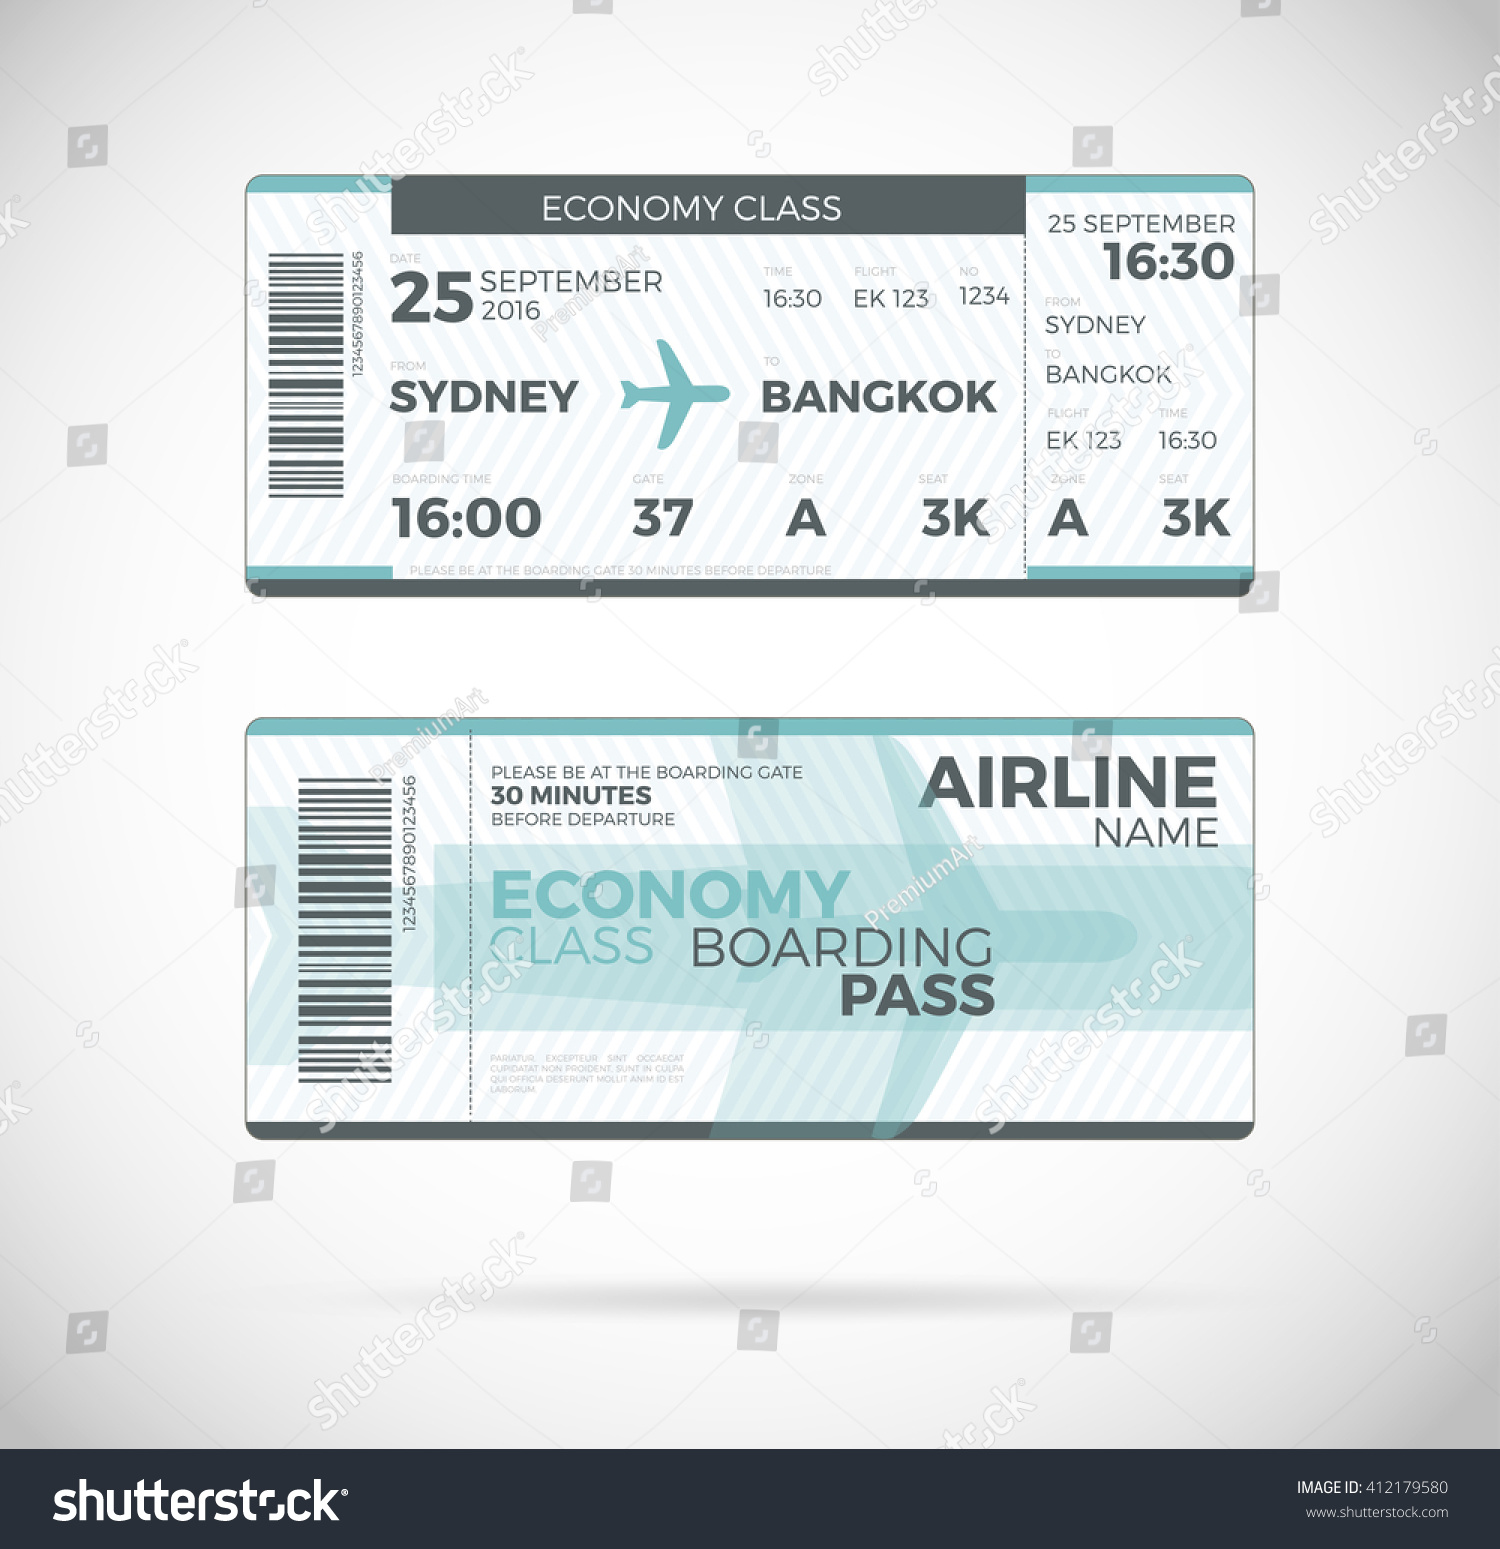 Airline boarding pass economy class ticket stock vector for Boarding pass sleeve template